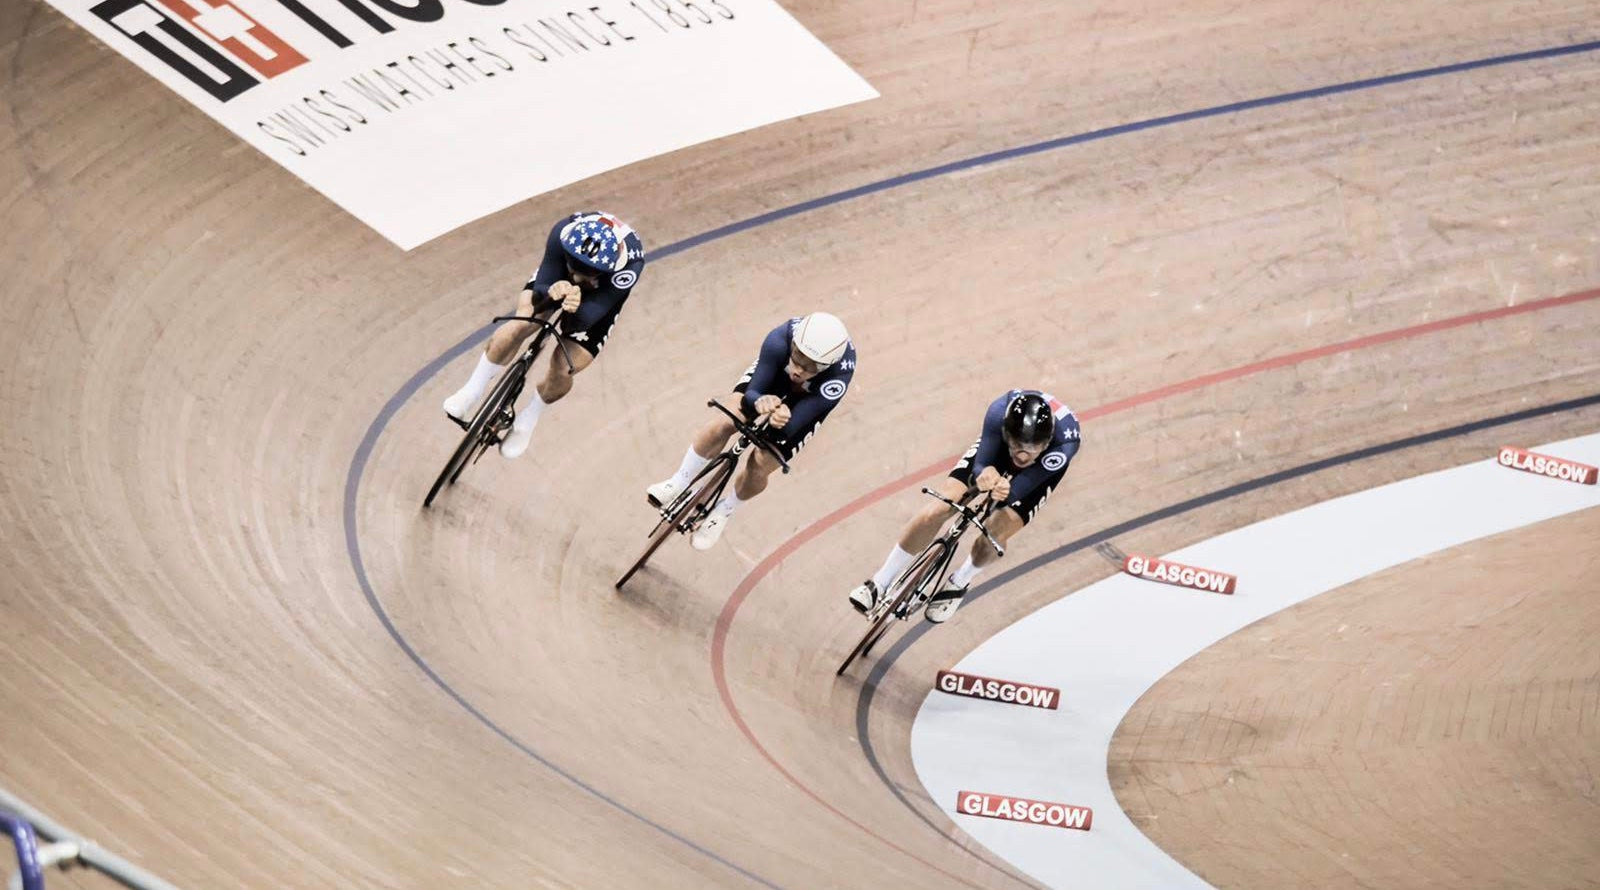 A Tokyo Journey: USA Cycling Men's Pursuit Track Cycling Team